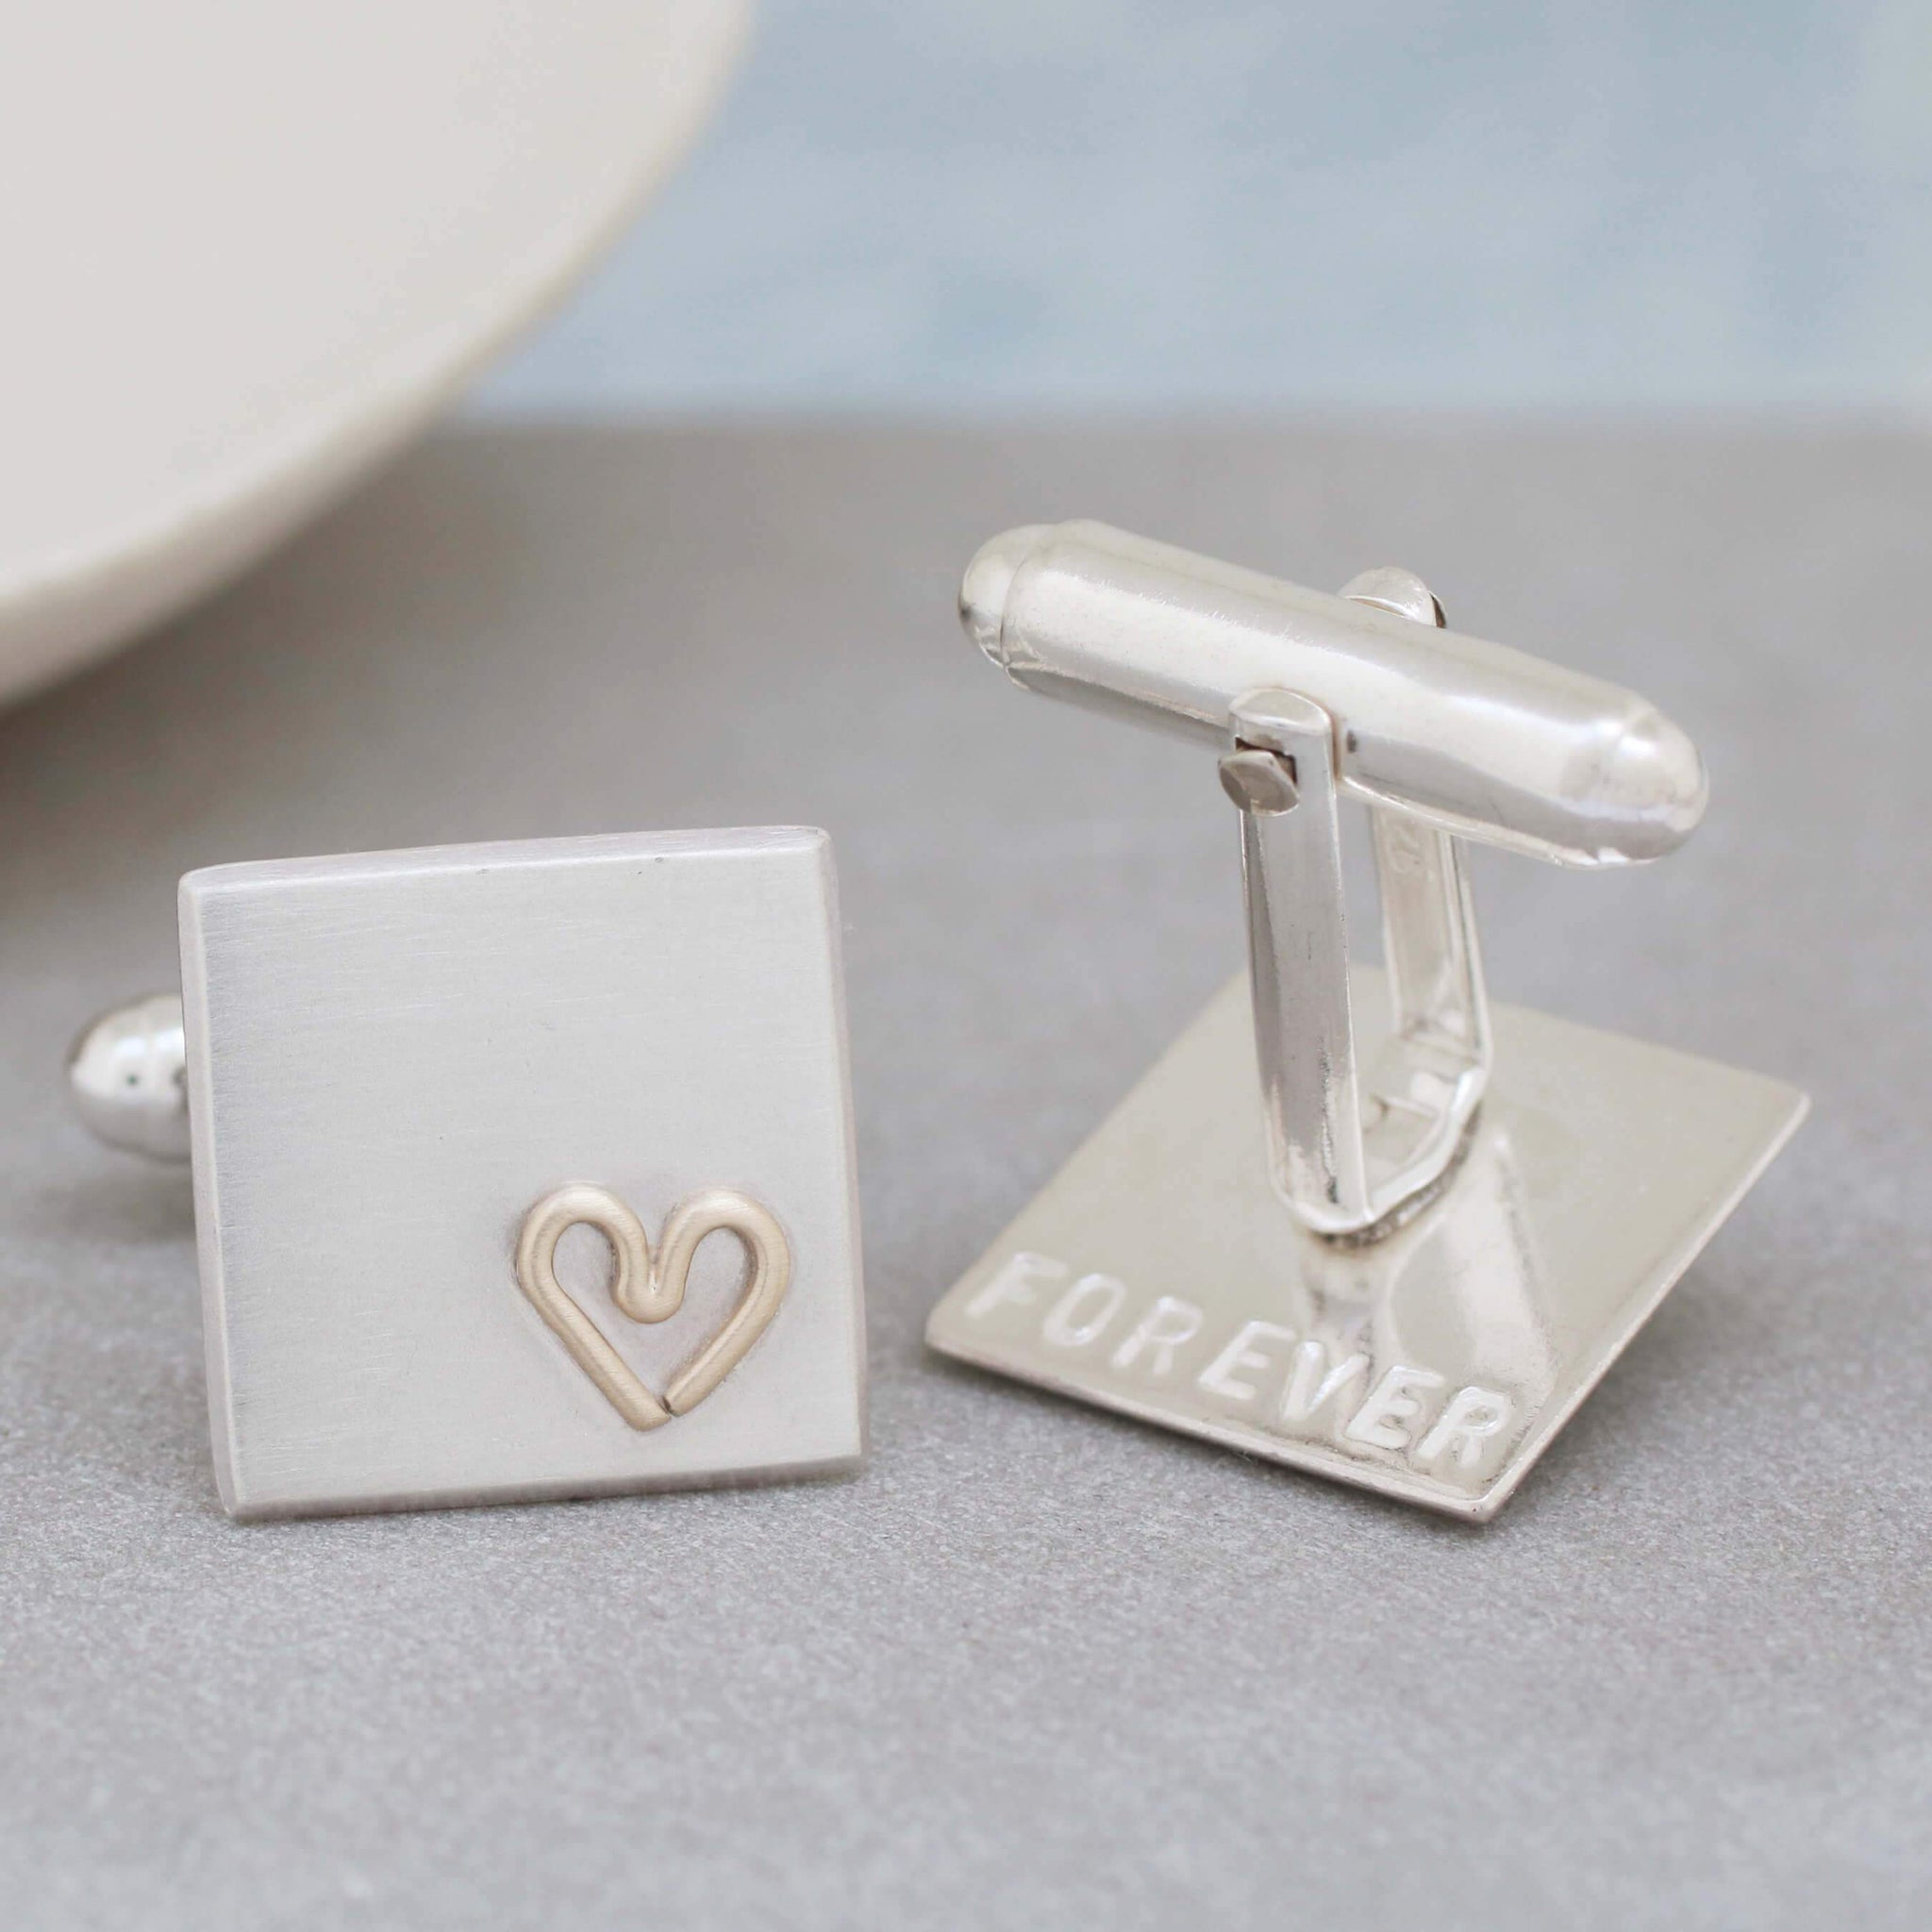 Personalised Wedding Cufflinks. Gold Heart Cufflinks